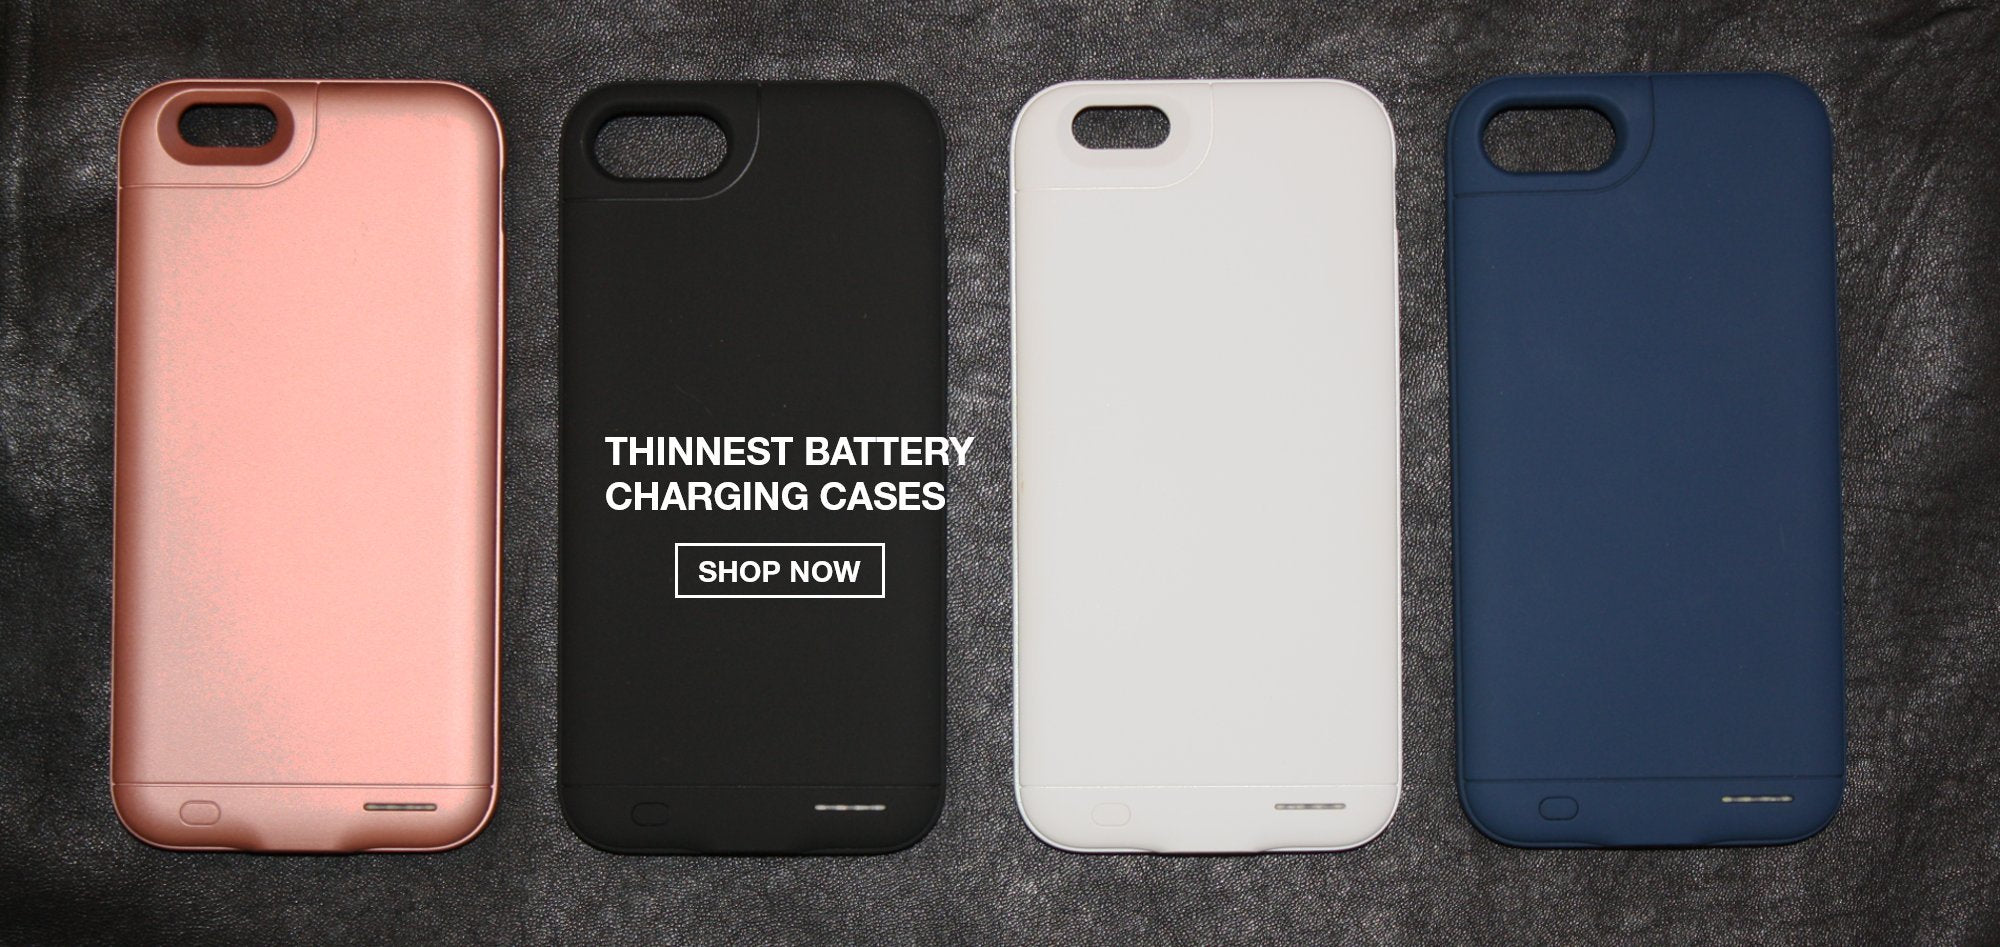 iphone battery charging cases and accessories